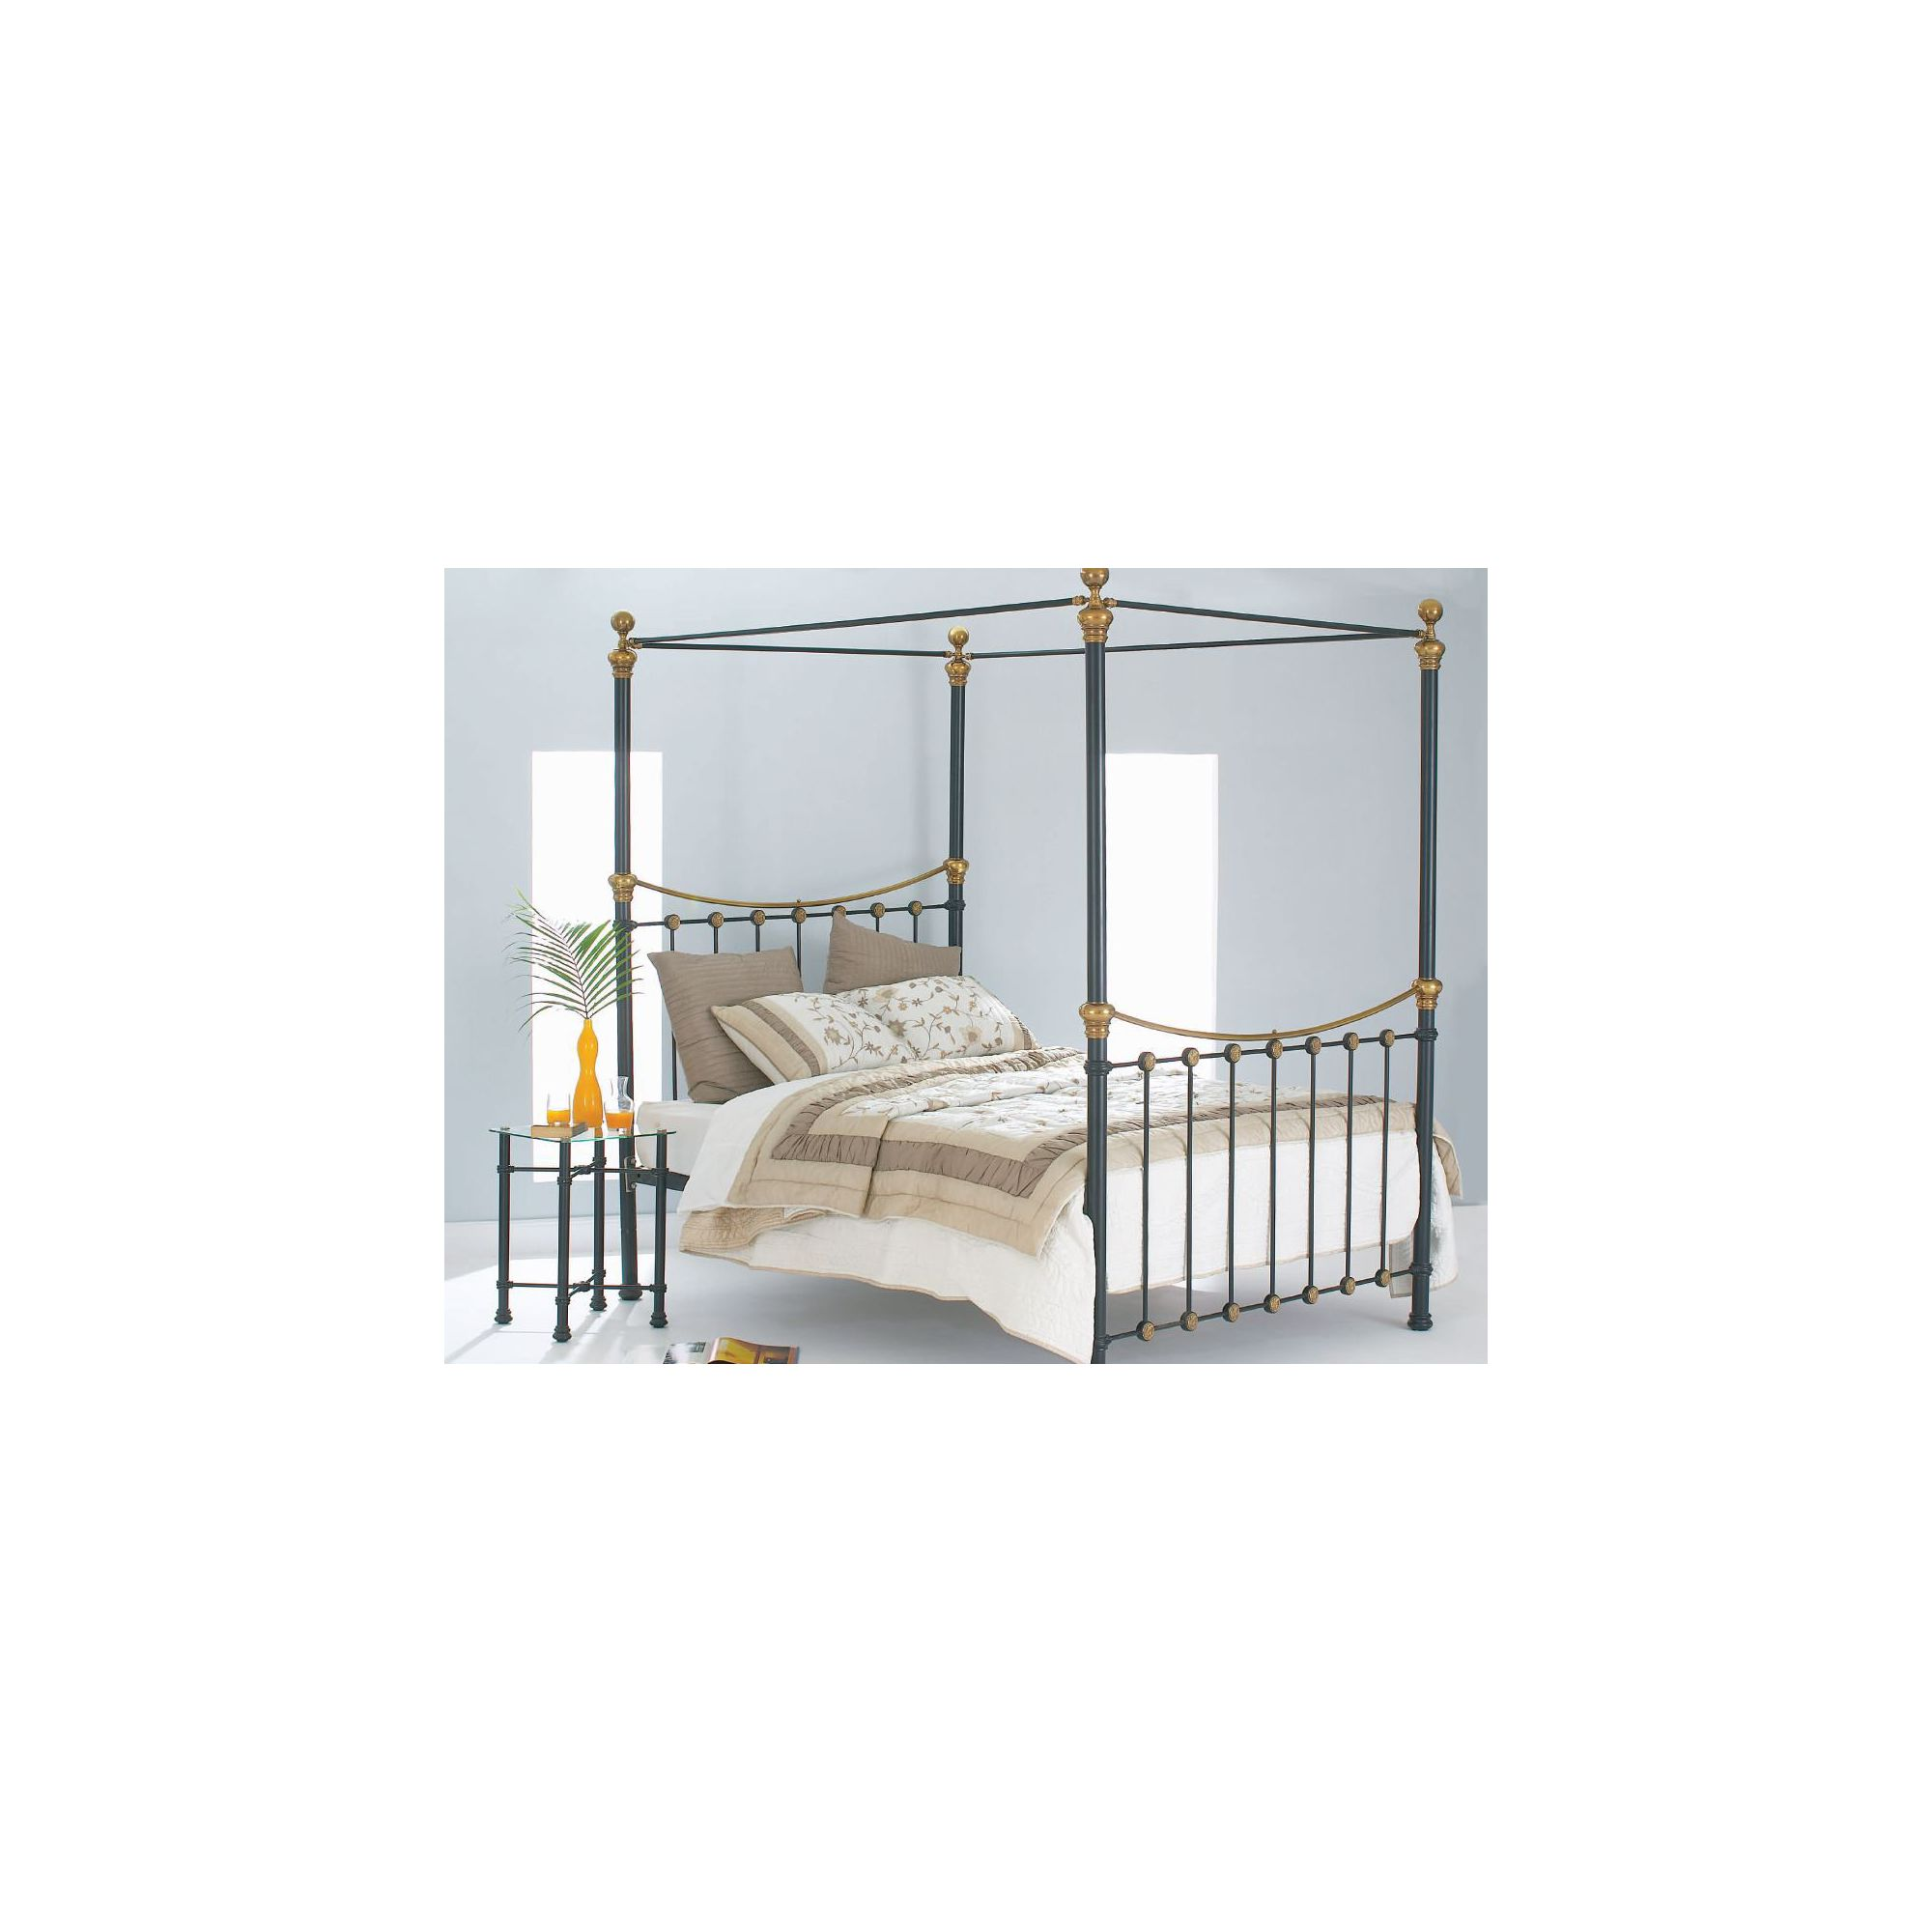 OBC Rannoch Bed Frame - King at Tesco Direct